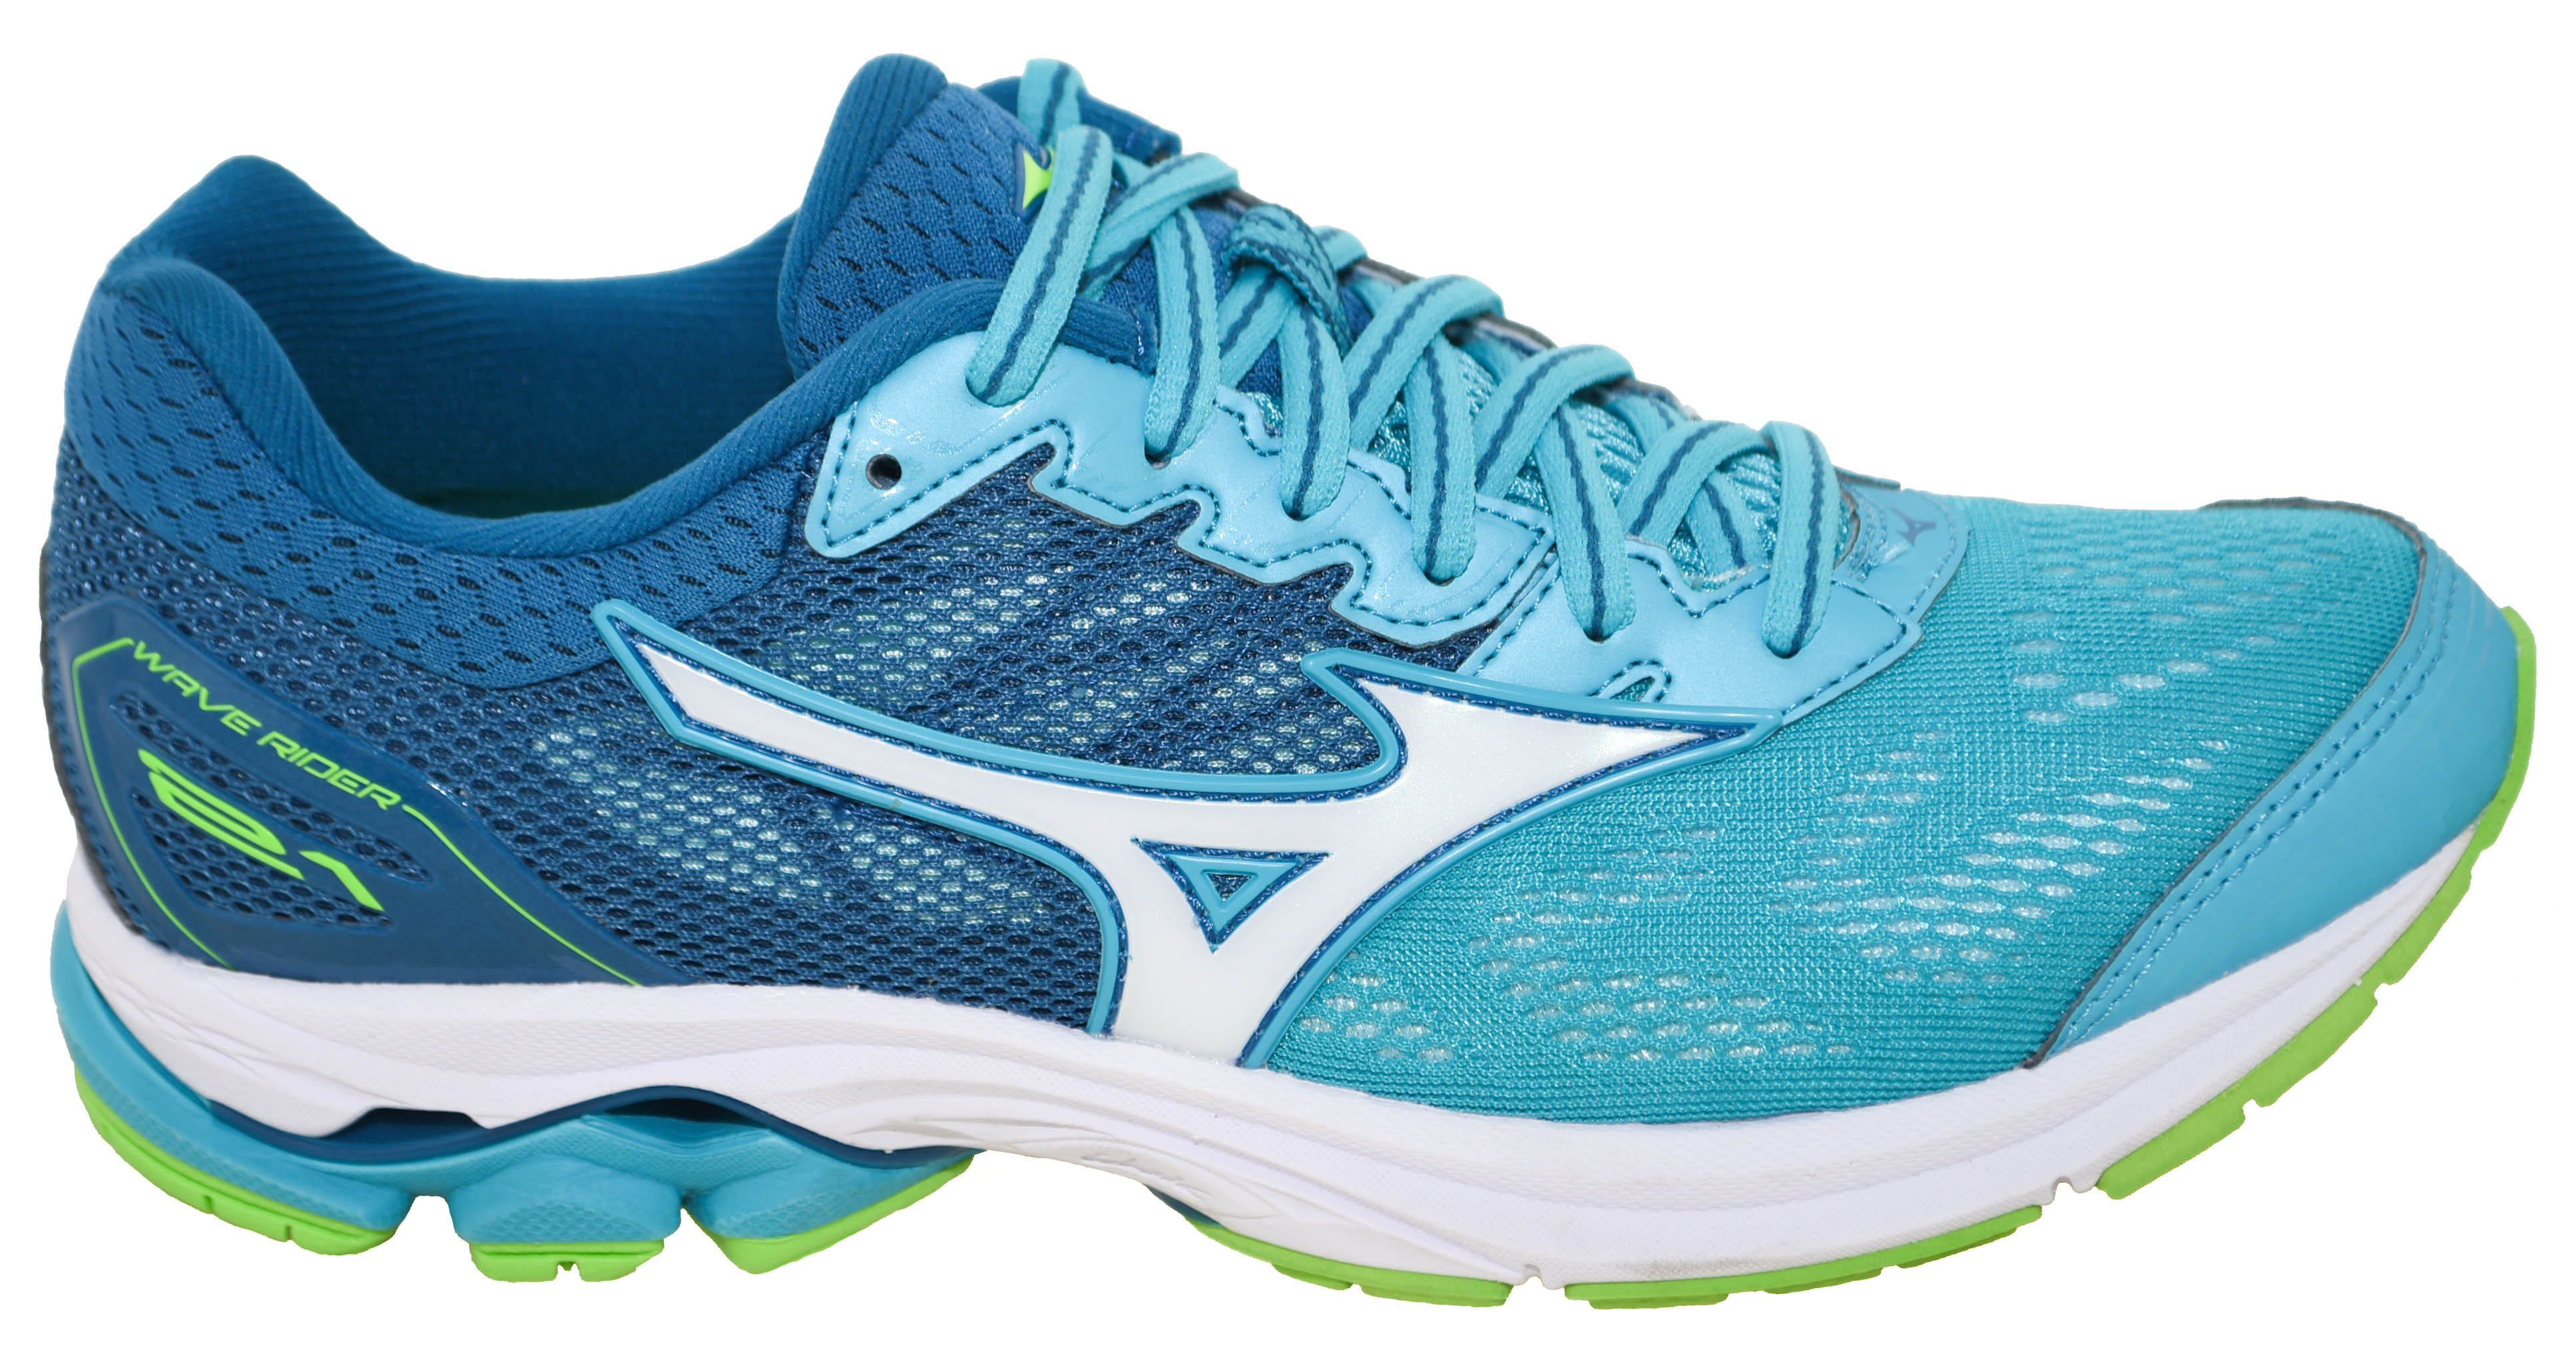 finest selection 2b9bf 4c318 Details about Mizuno Women's Wave Rider 21 Running Shoe Peacock Blue/White  Style 180307